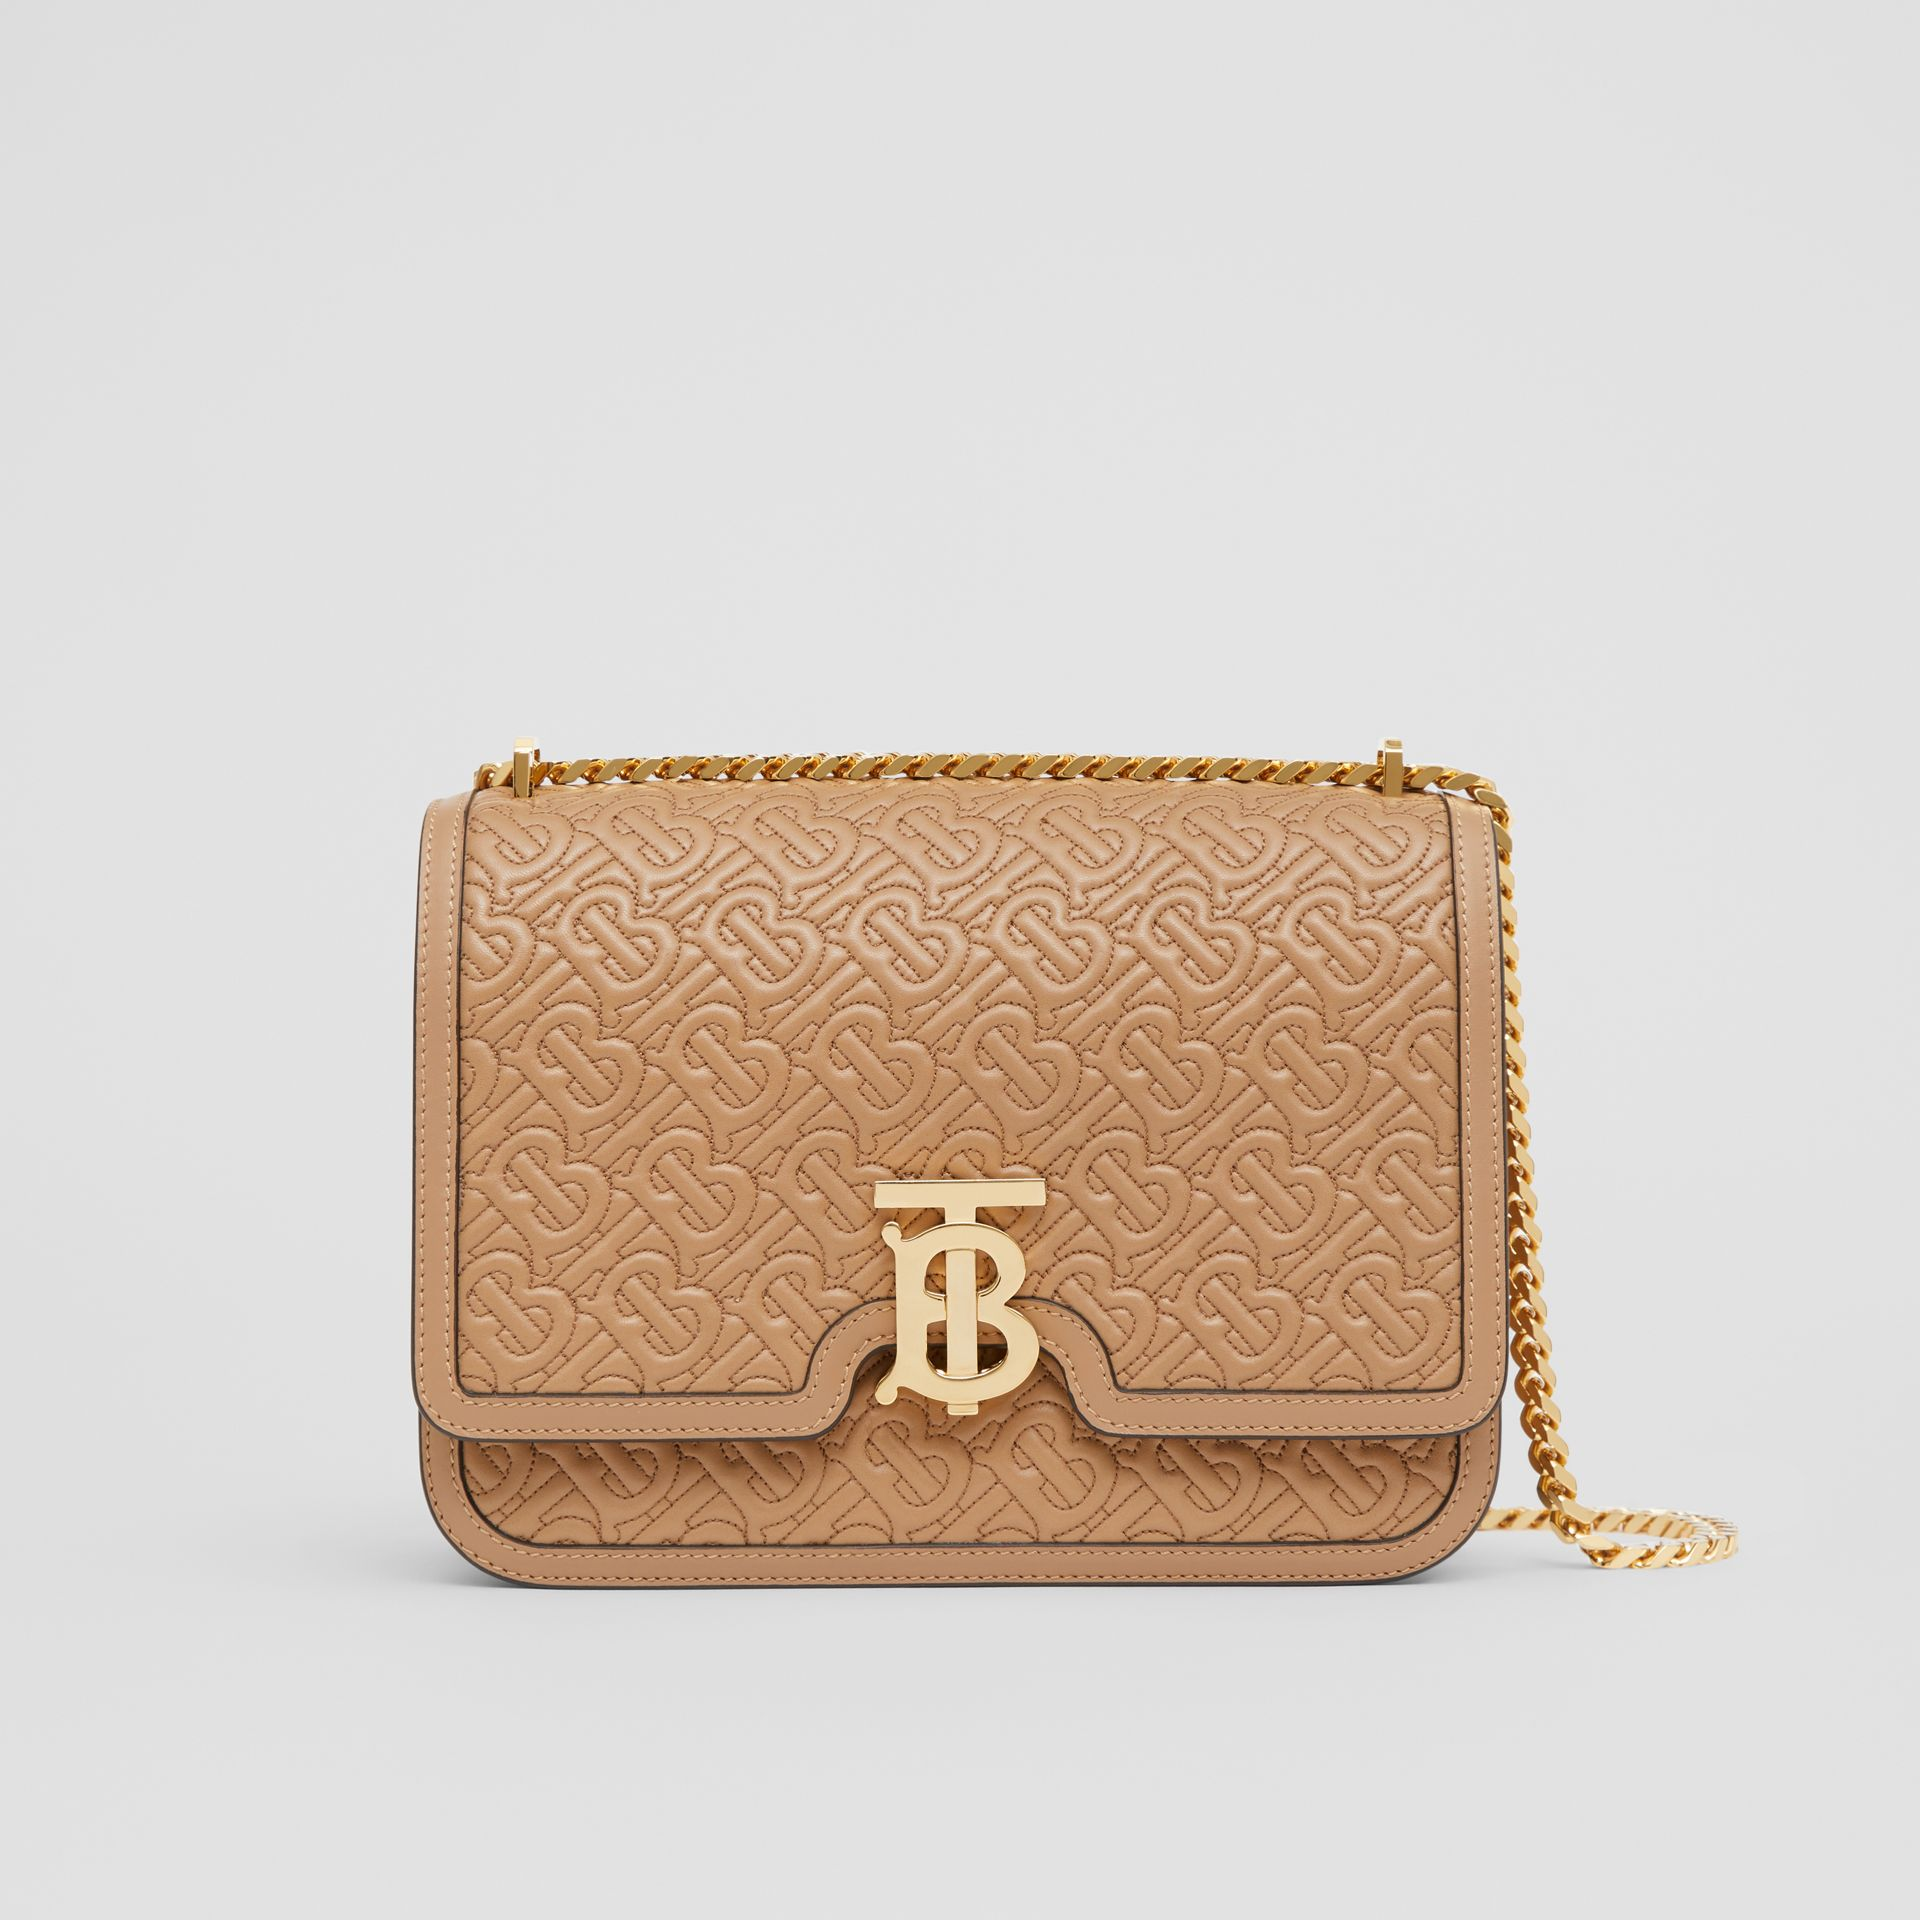 Medium Quilted Monogram Lambskin TB Bag in Honey - Women | Burberry - gallery image 0